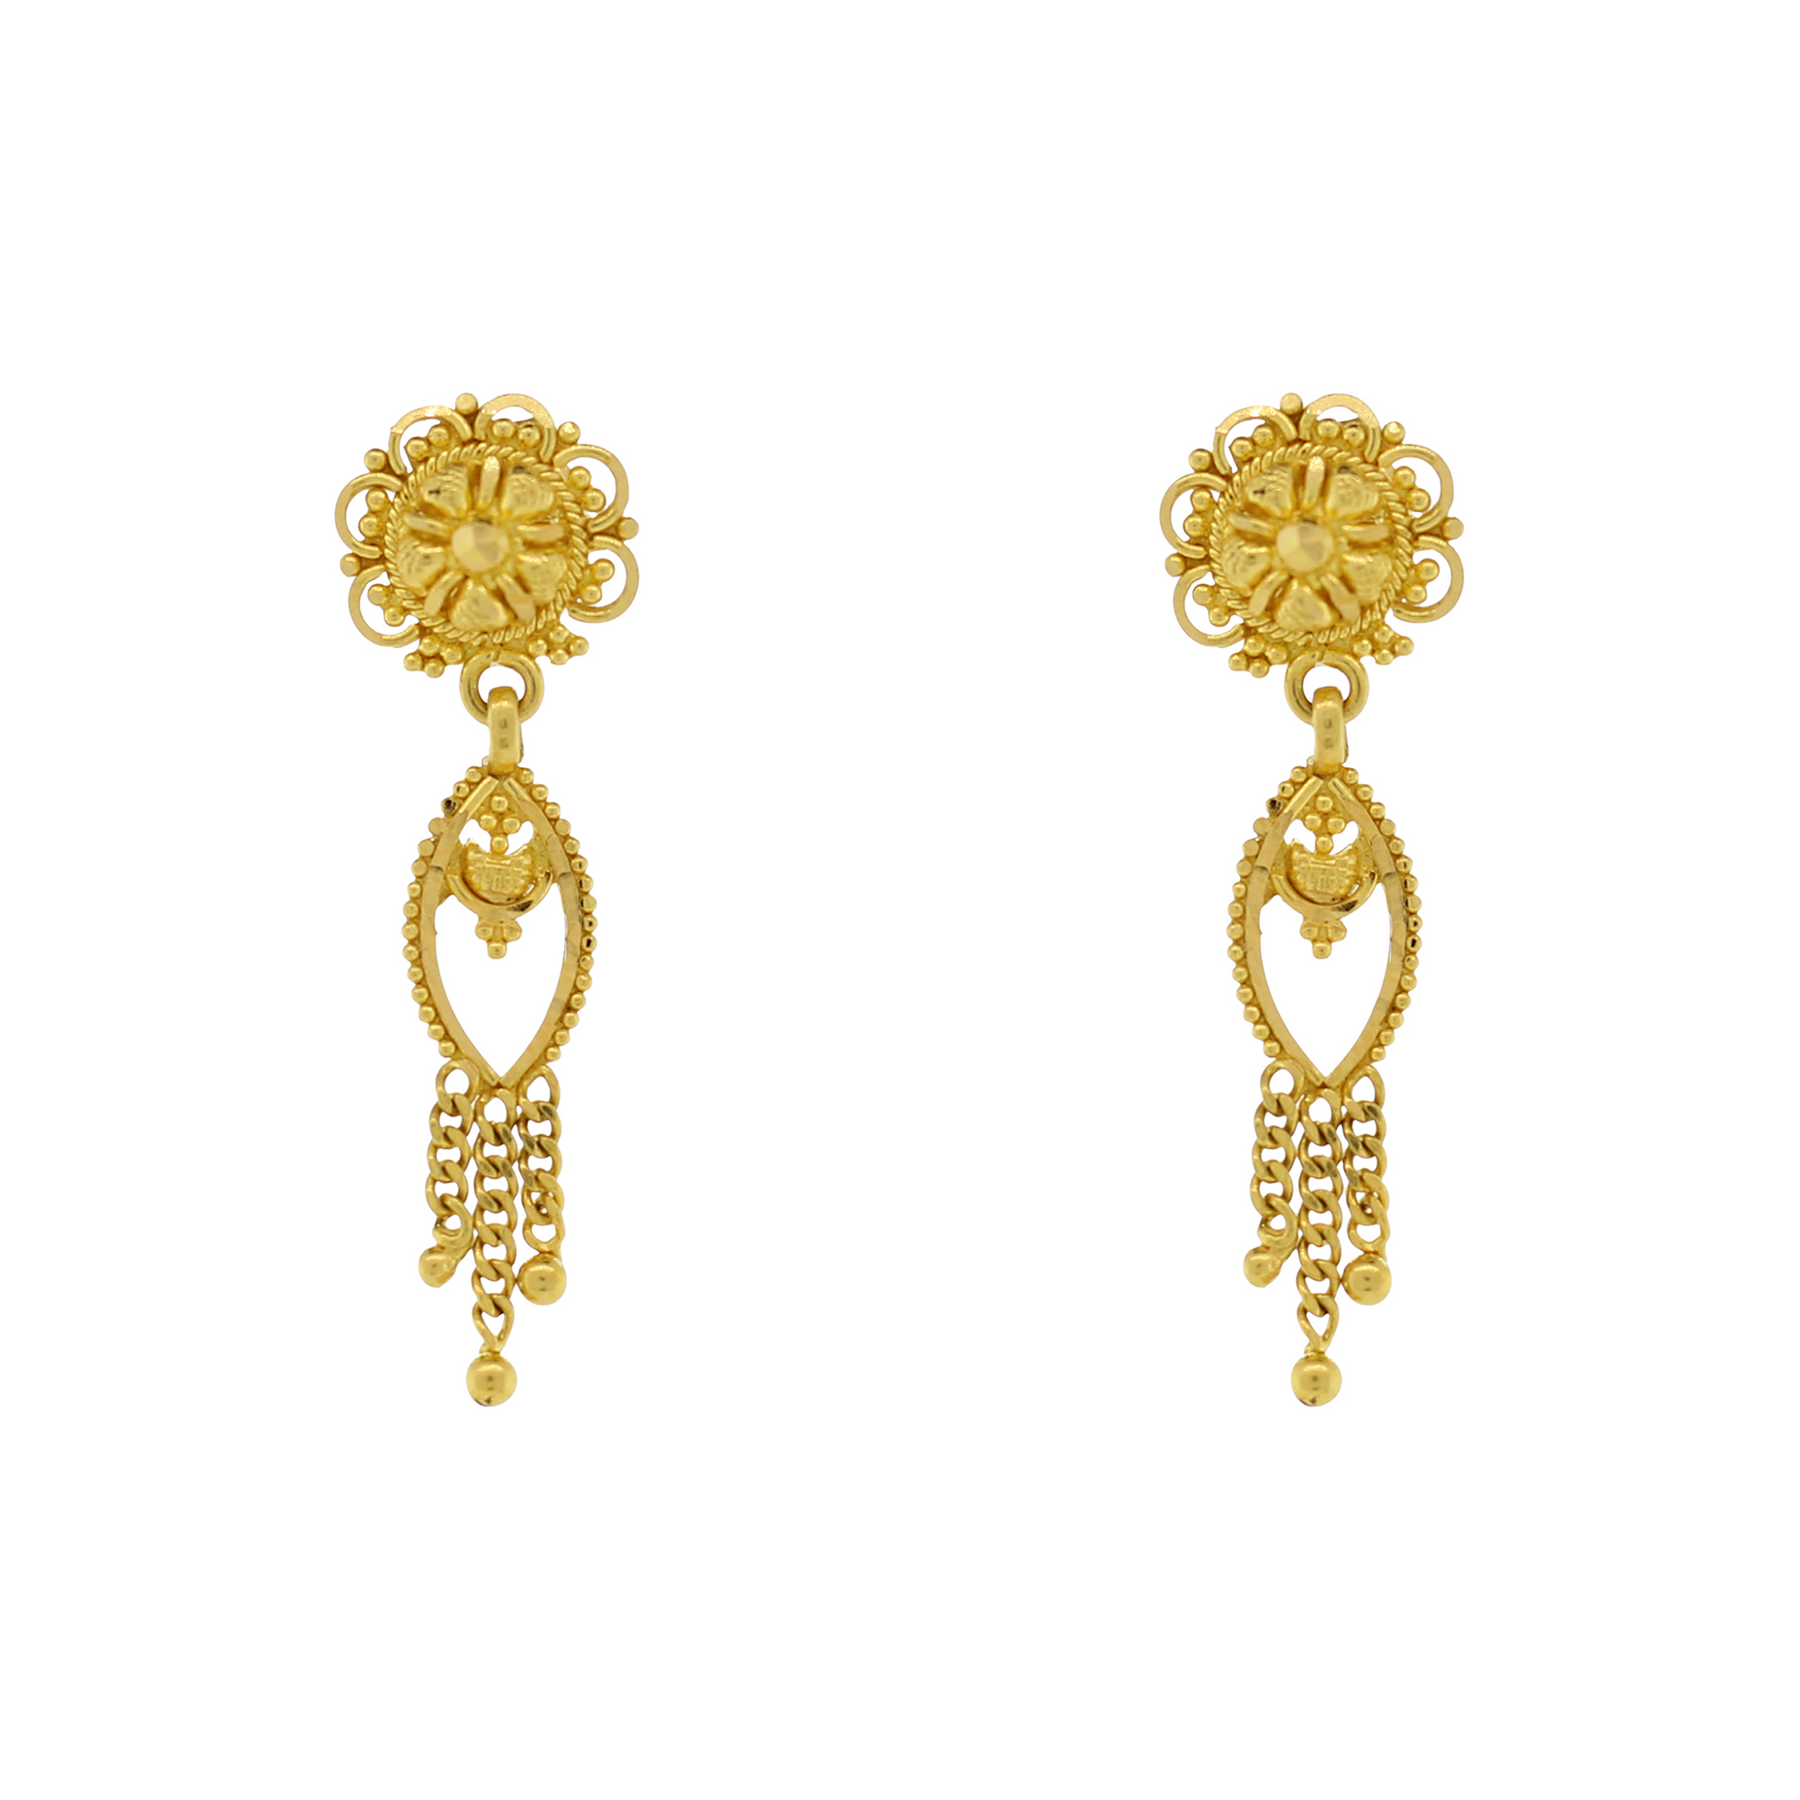 GOLD HANGING EARRINGS – Andaaz Jewelers